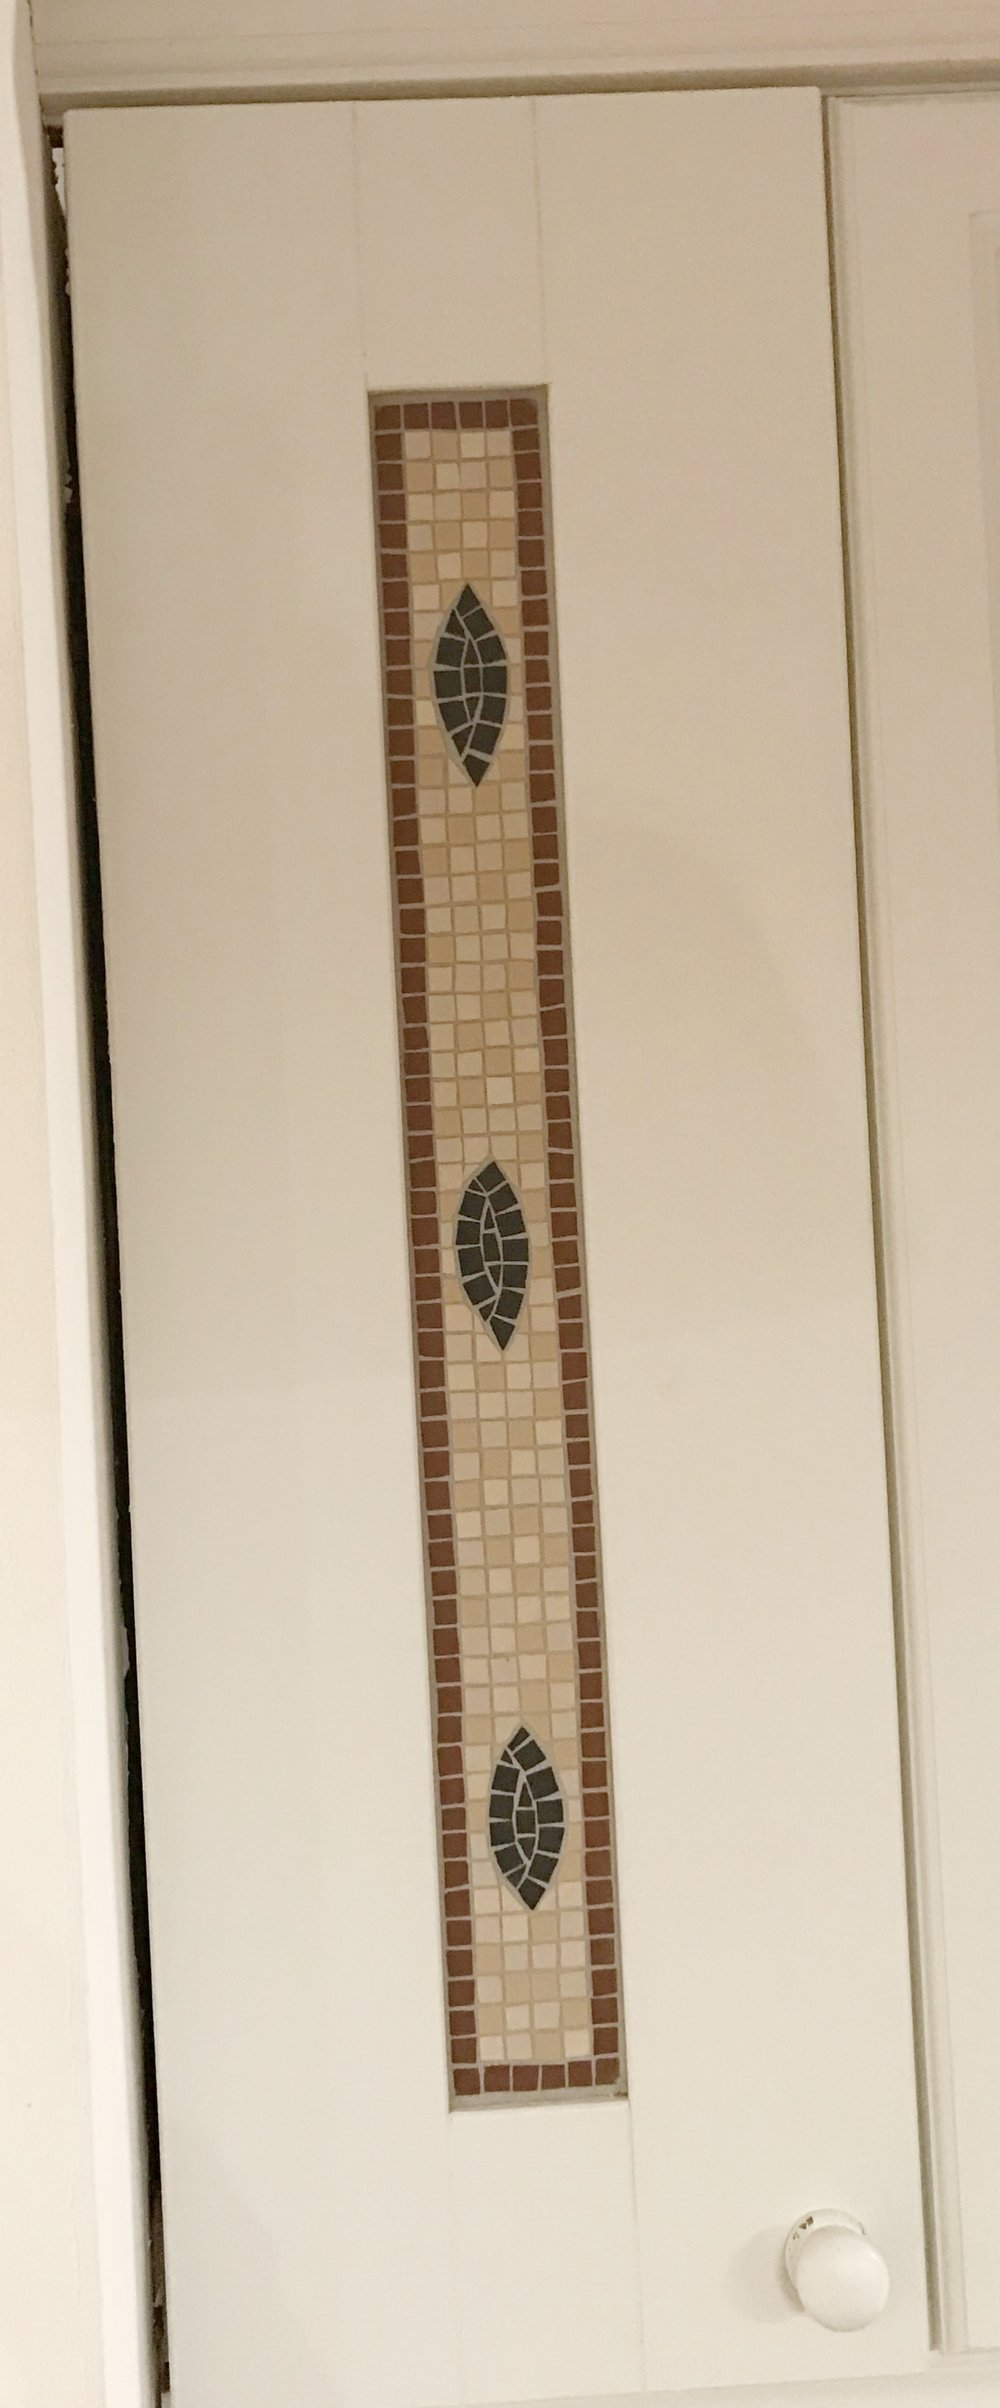 Kitchen cupboard door mosaic inset.